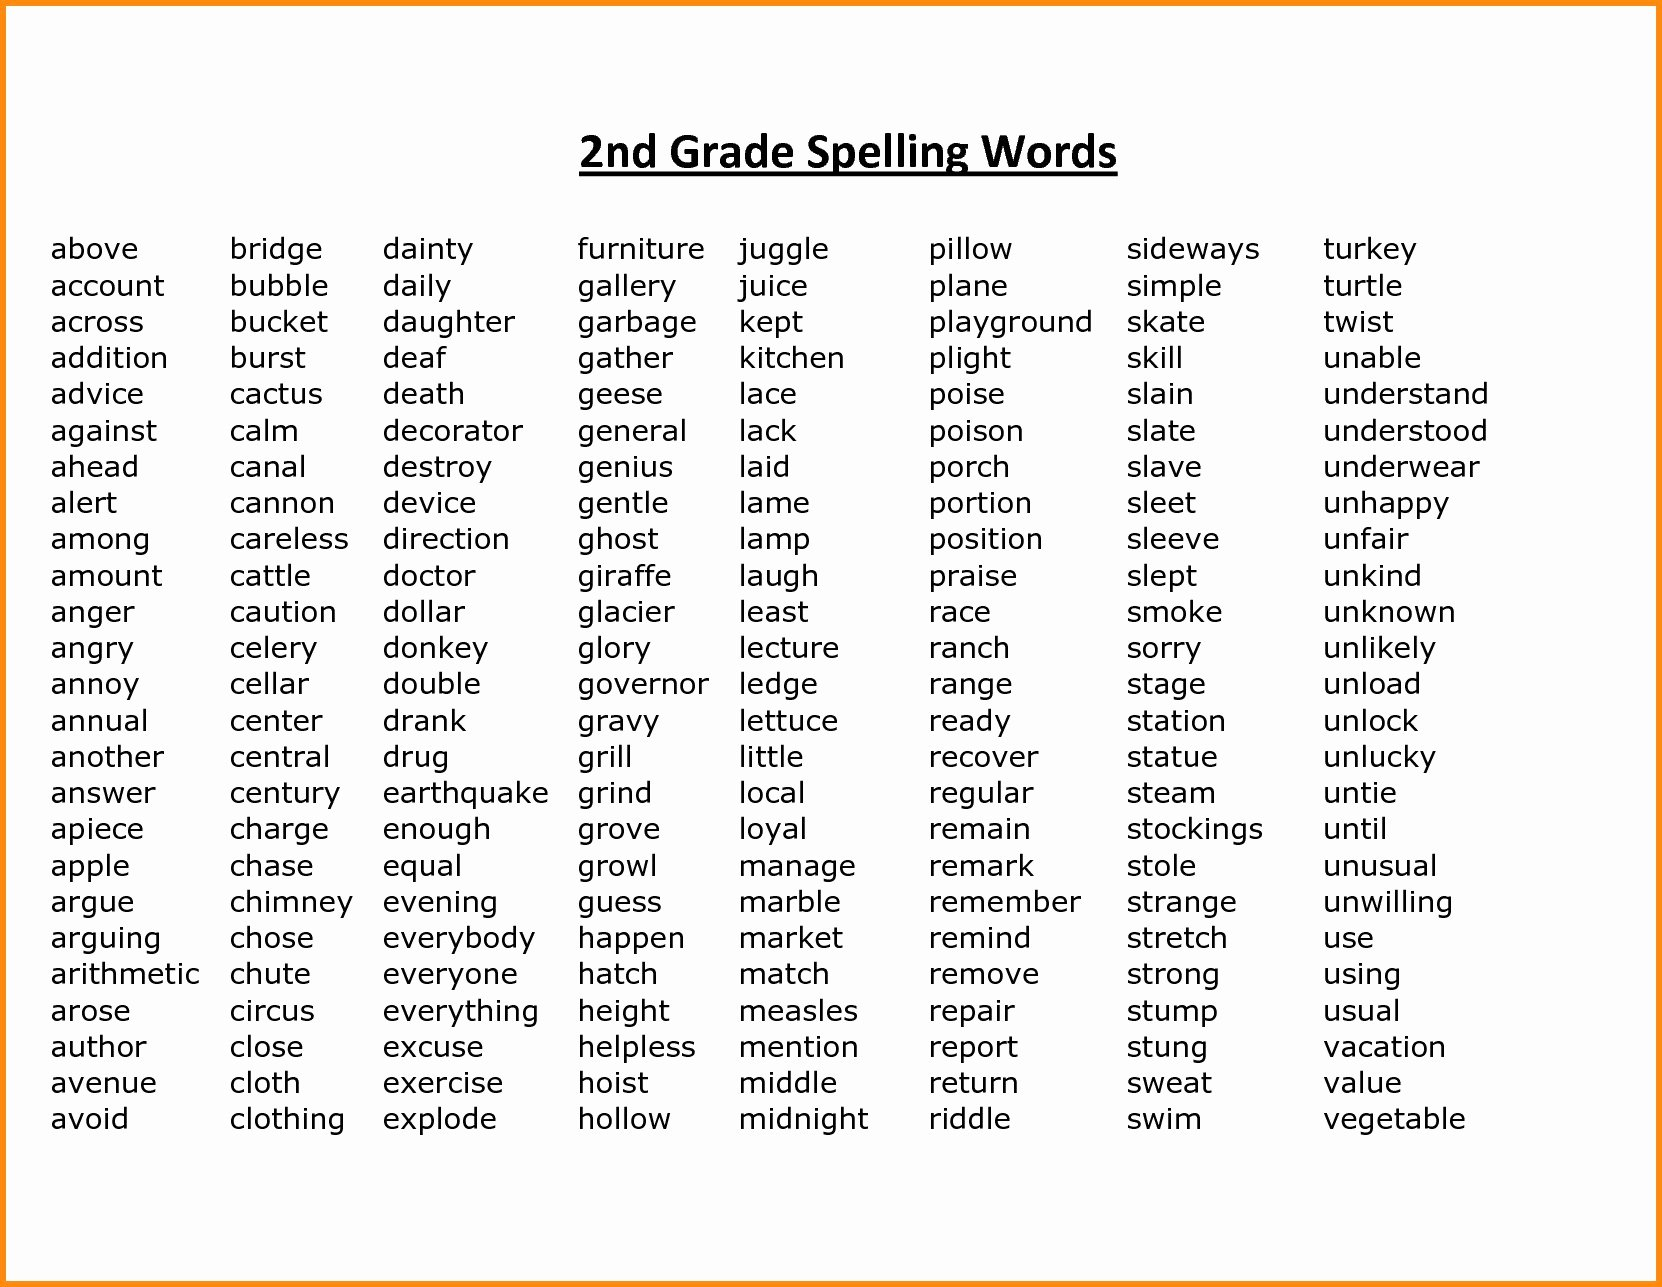 2nd Grade Vocabulary Worksheet Awesome 2nd Grade Spelling Words Best Coloring Pages for Kids